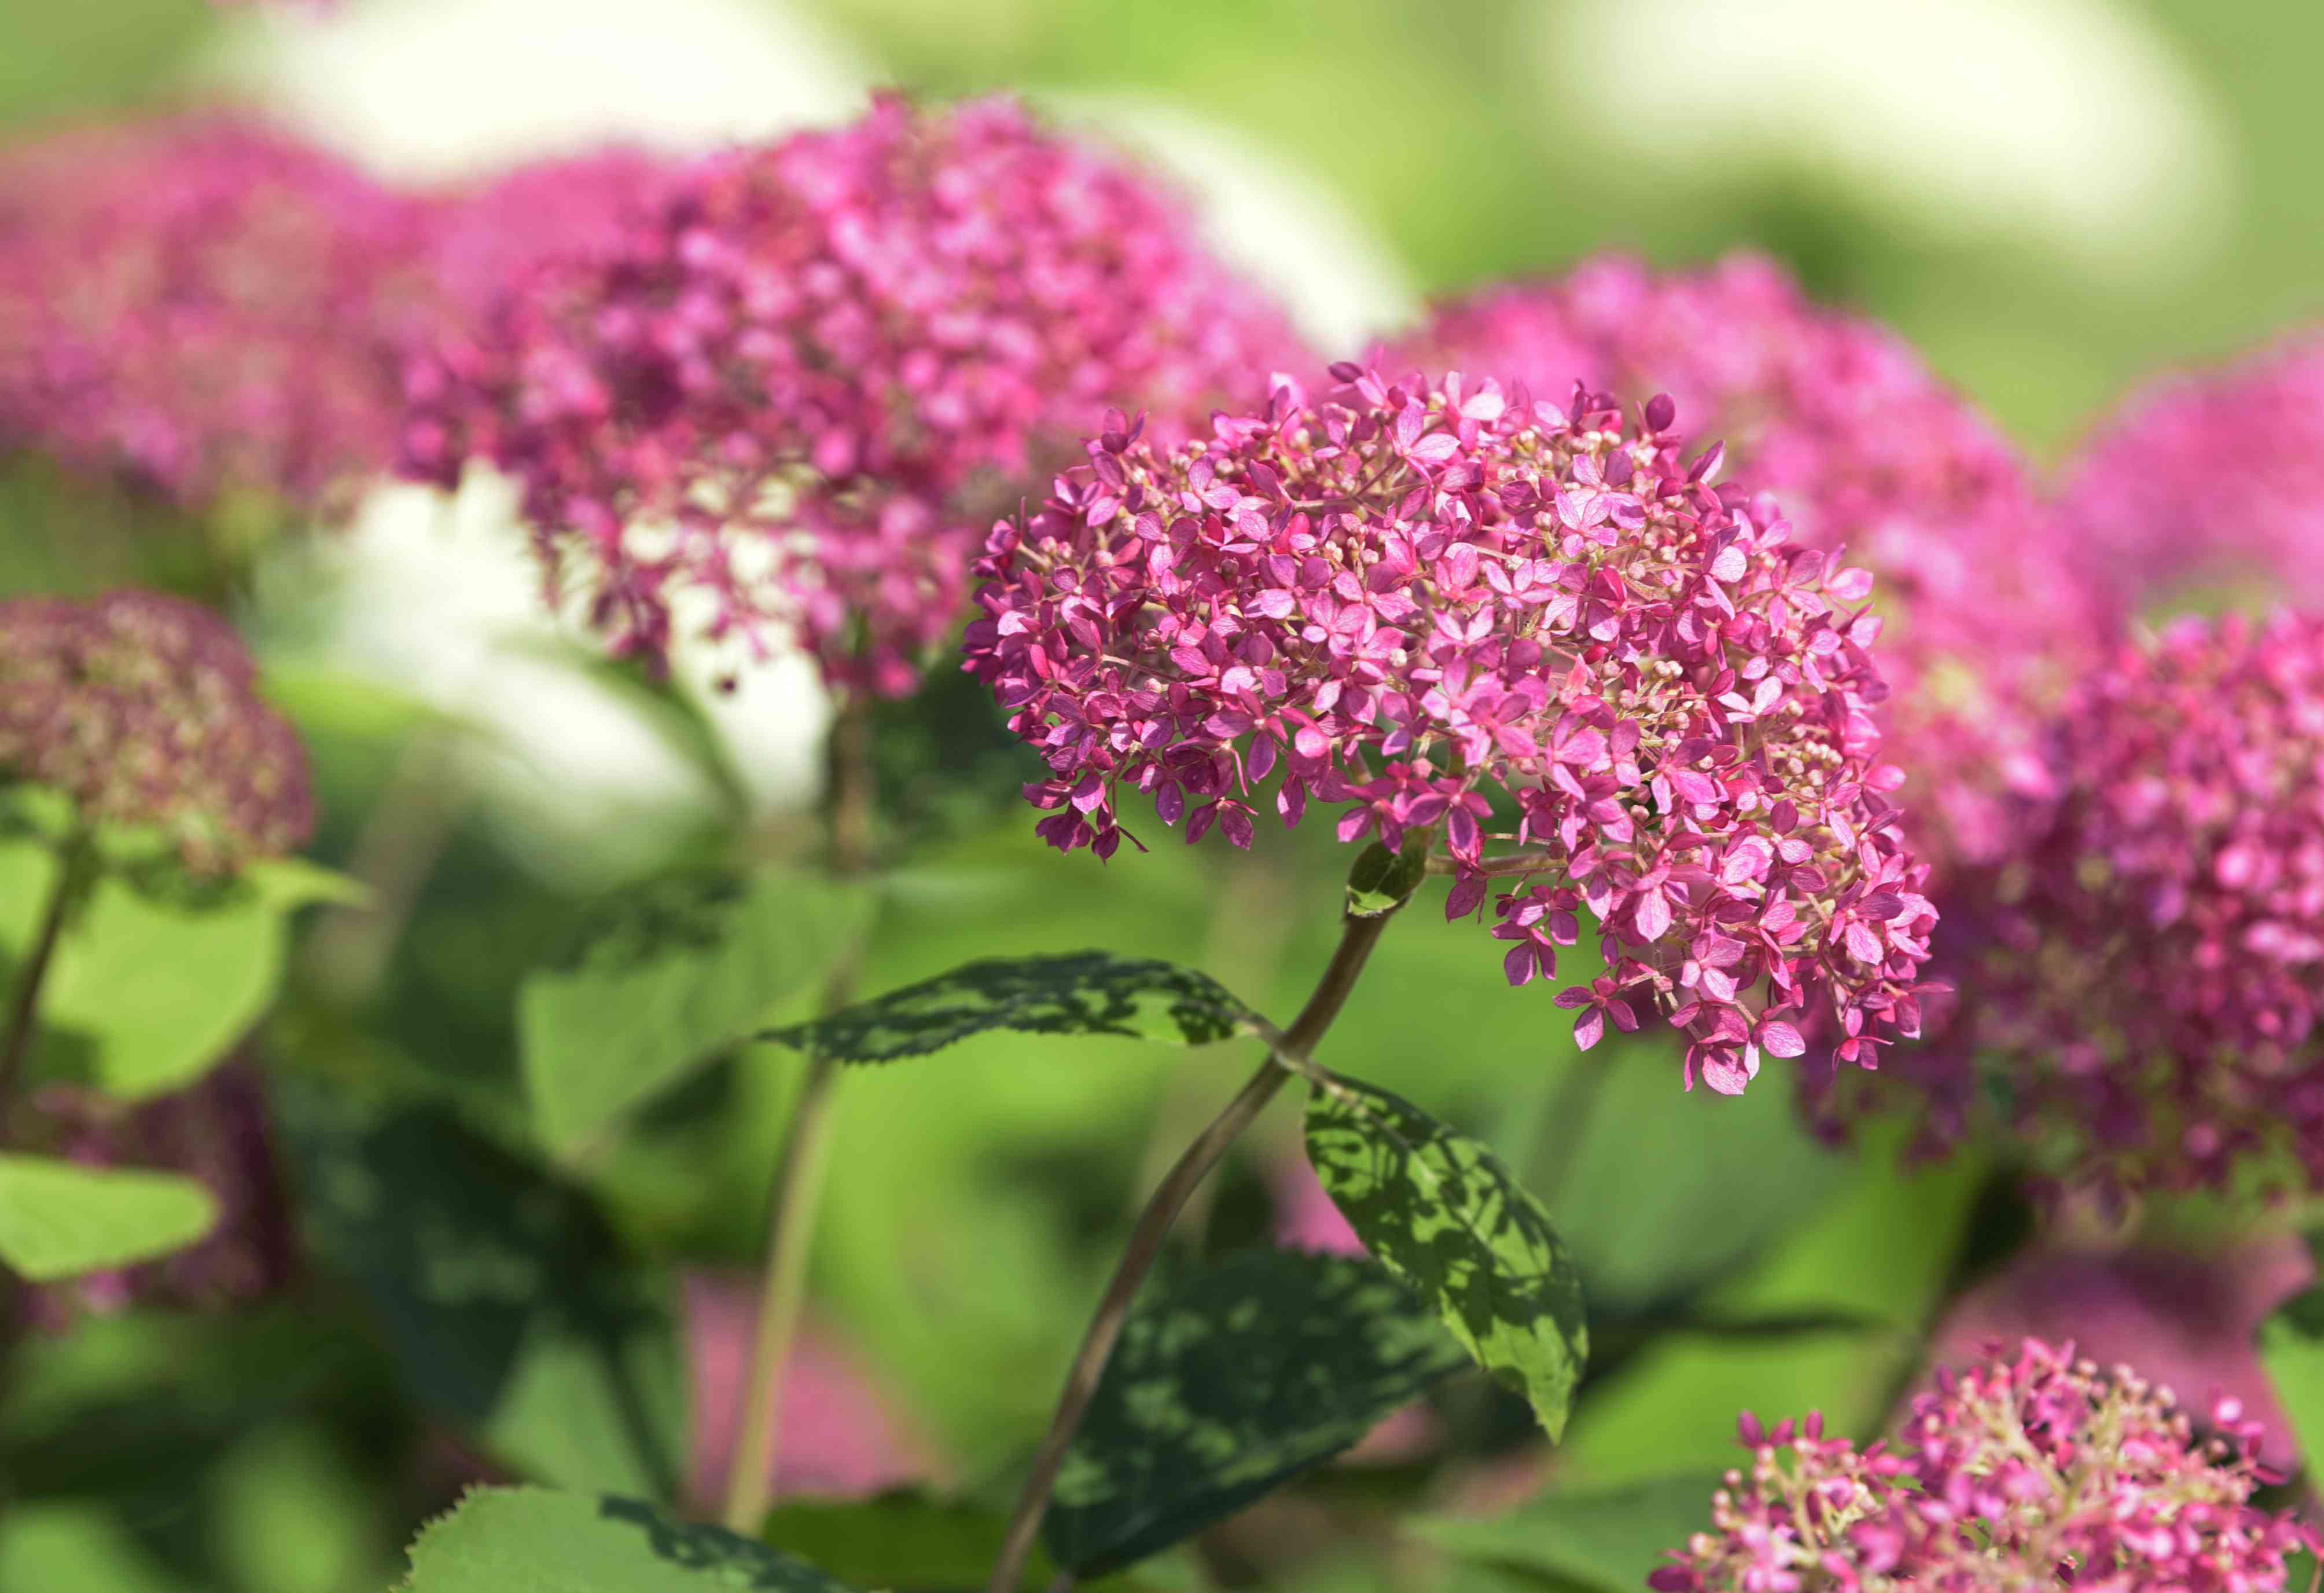 Invincibelle spirit hydrangea shrub with small pink flowers clustered on thin stems closeup